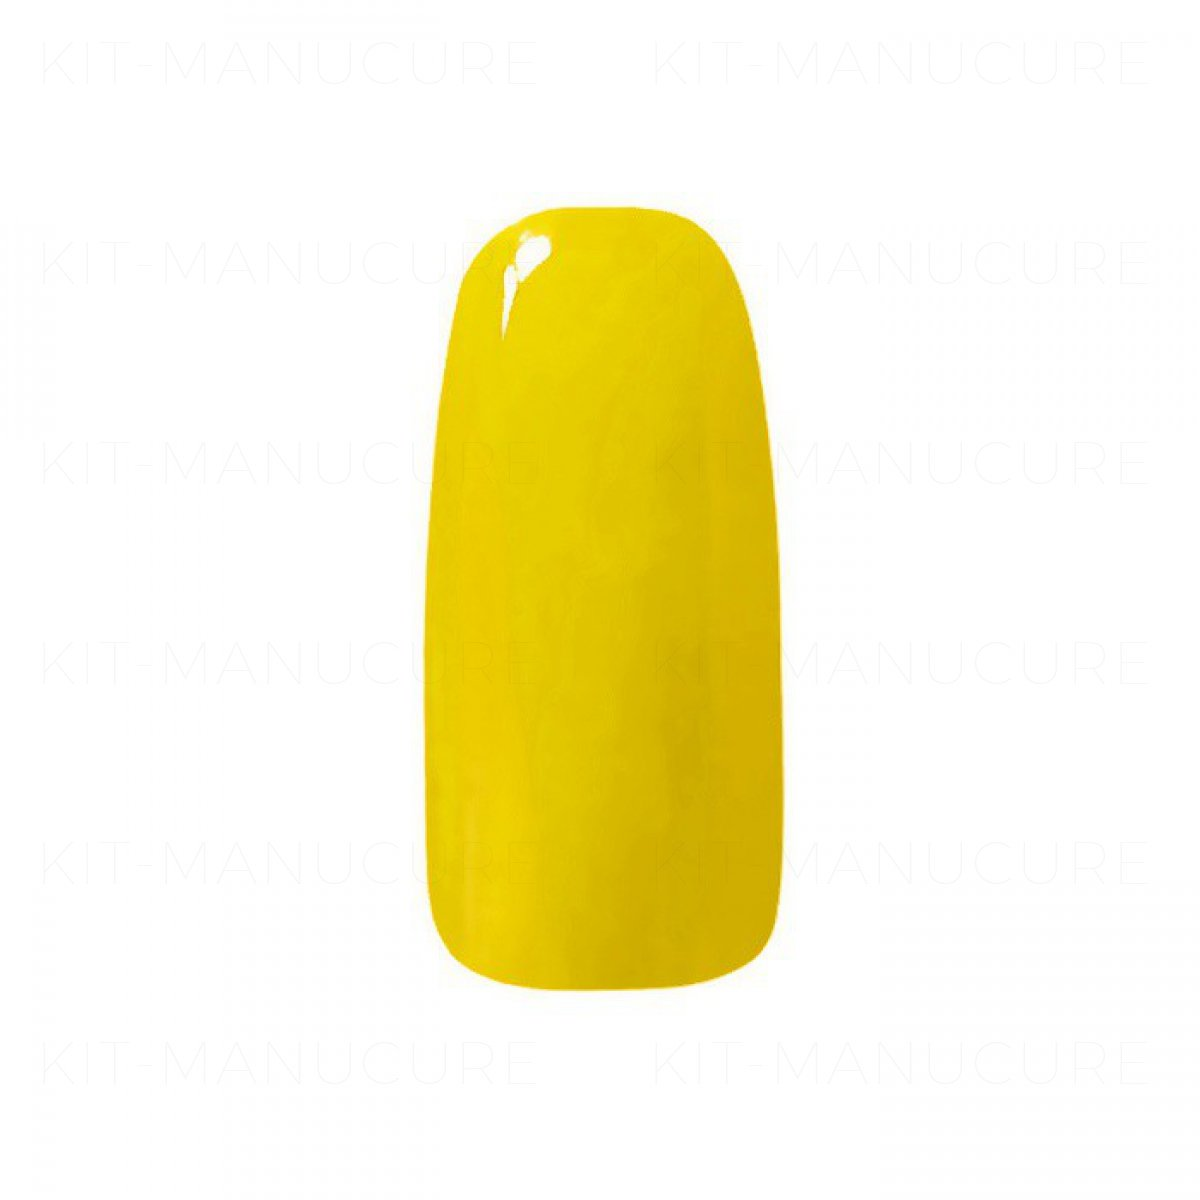 https://www.kit-manucure.com/1968-thickbox_default/gel-uv-jaune-citron-5-ml.jpg